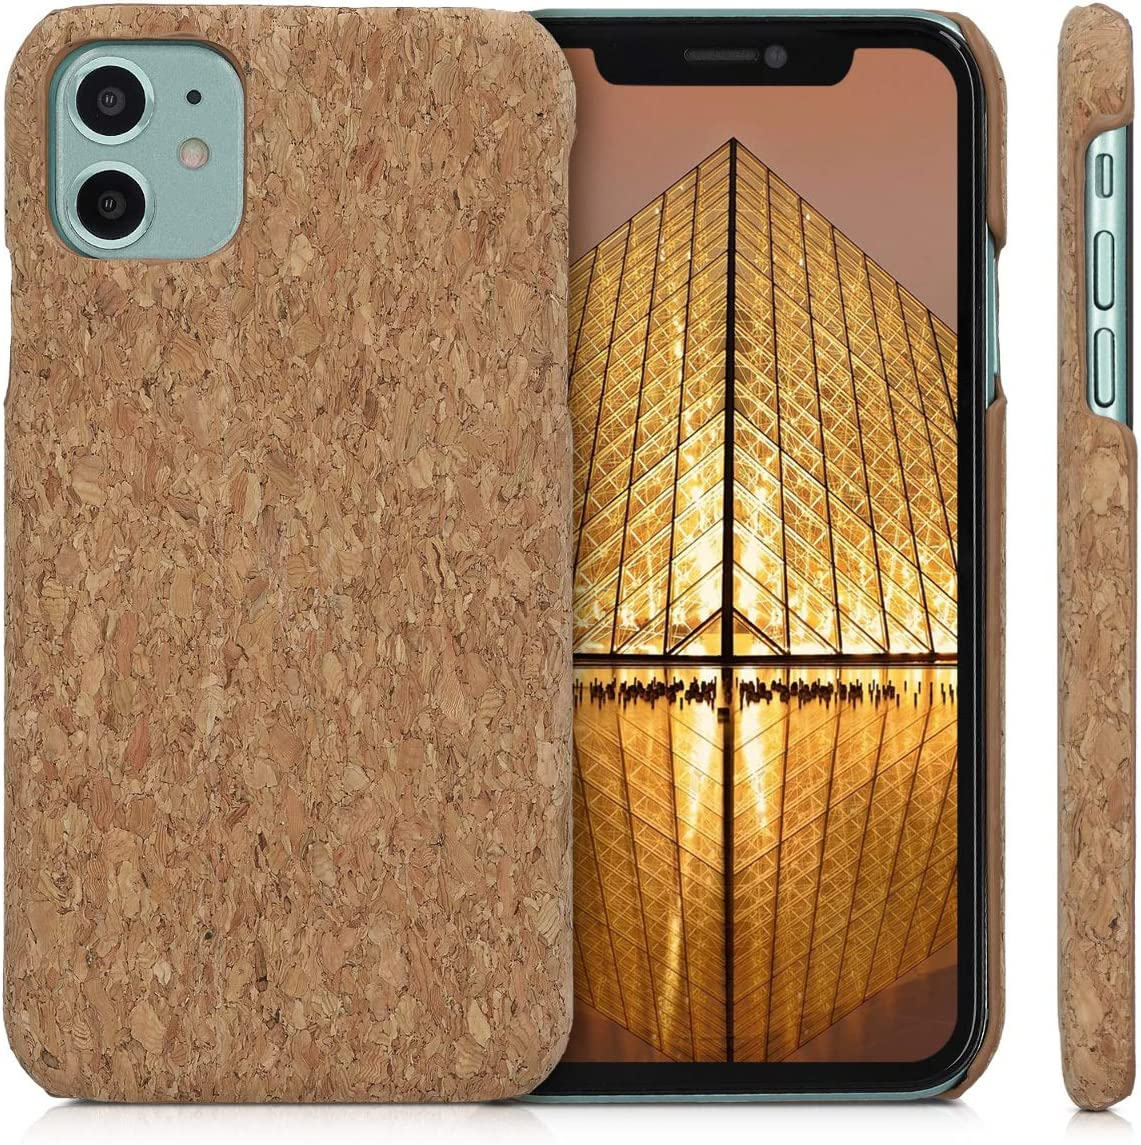 kwmobile Case Compatible with Apple iPhone 11 - Case Protective Cork Mobile Cell Phone Cover - Light Brown